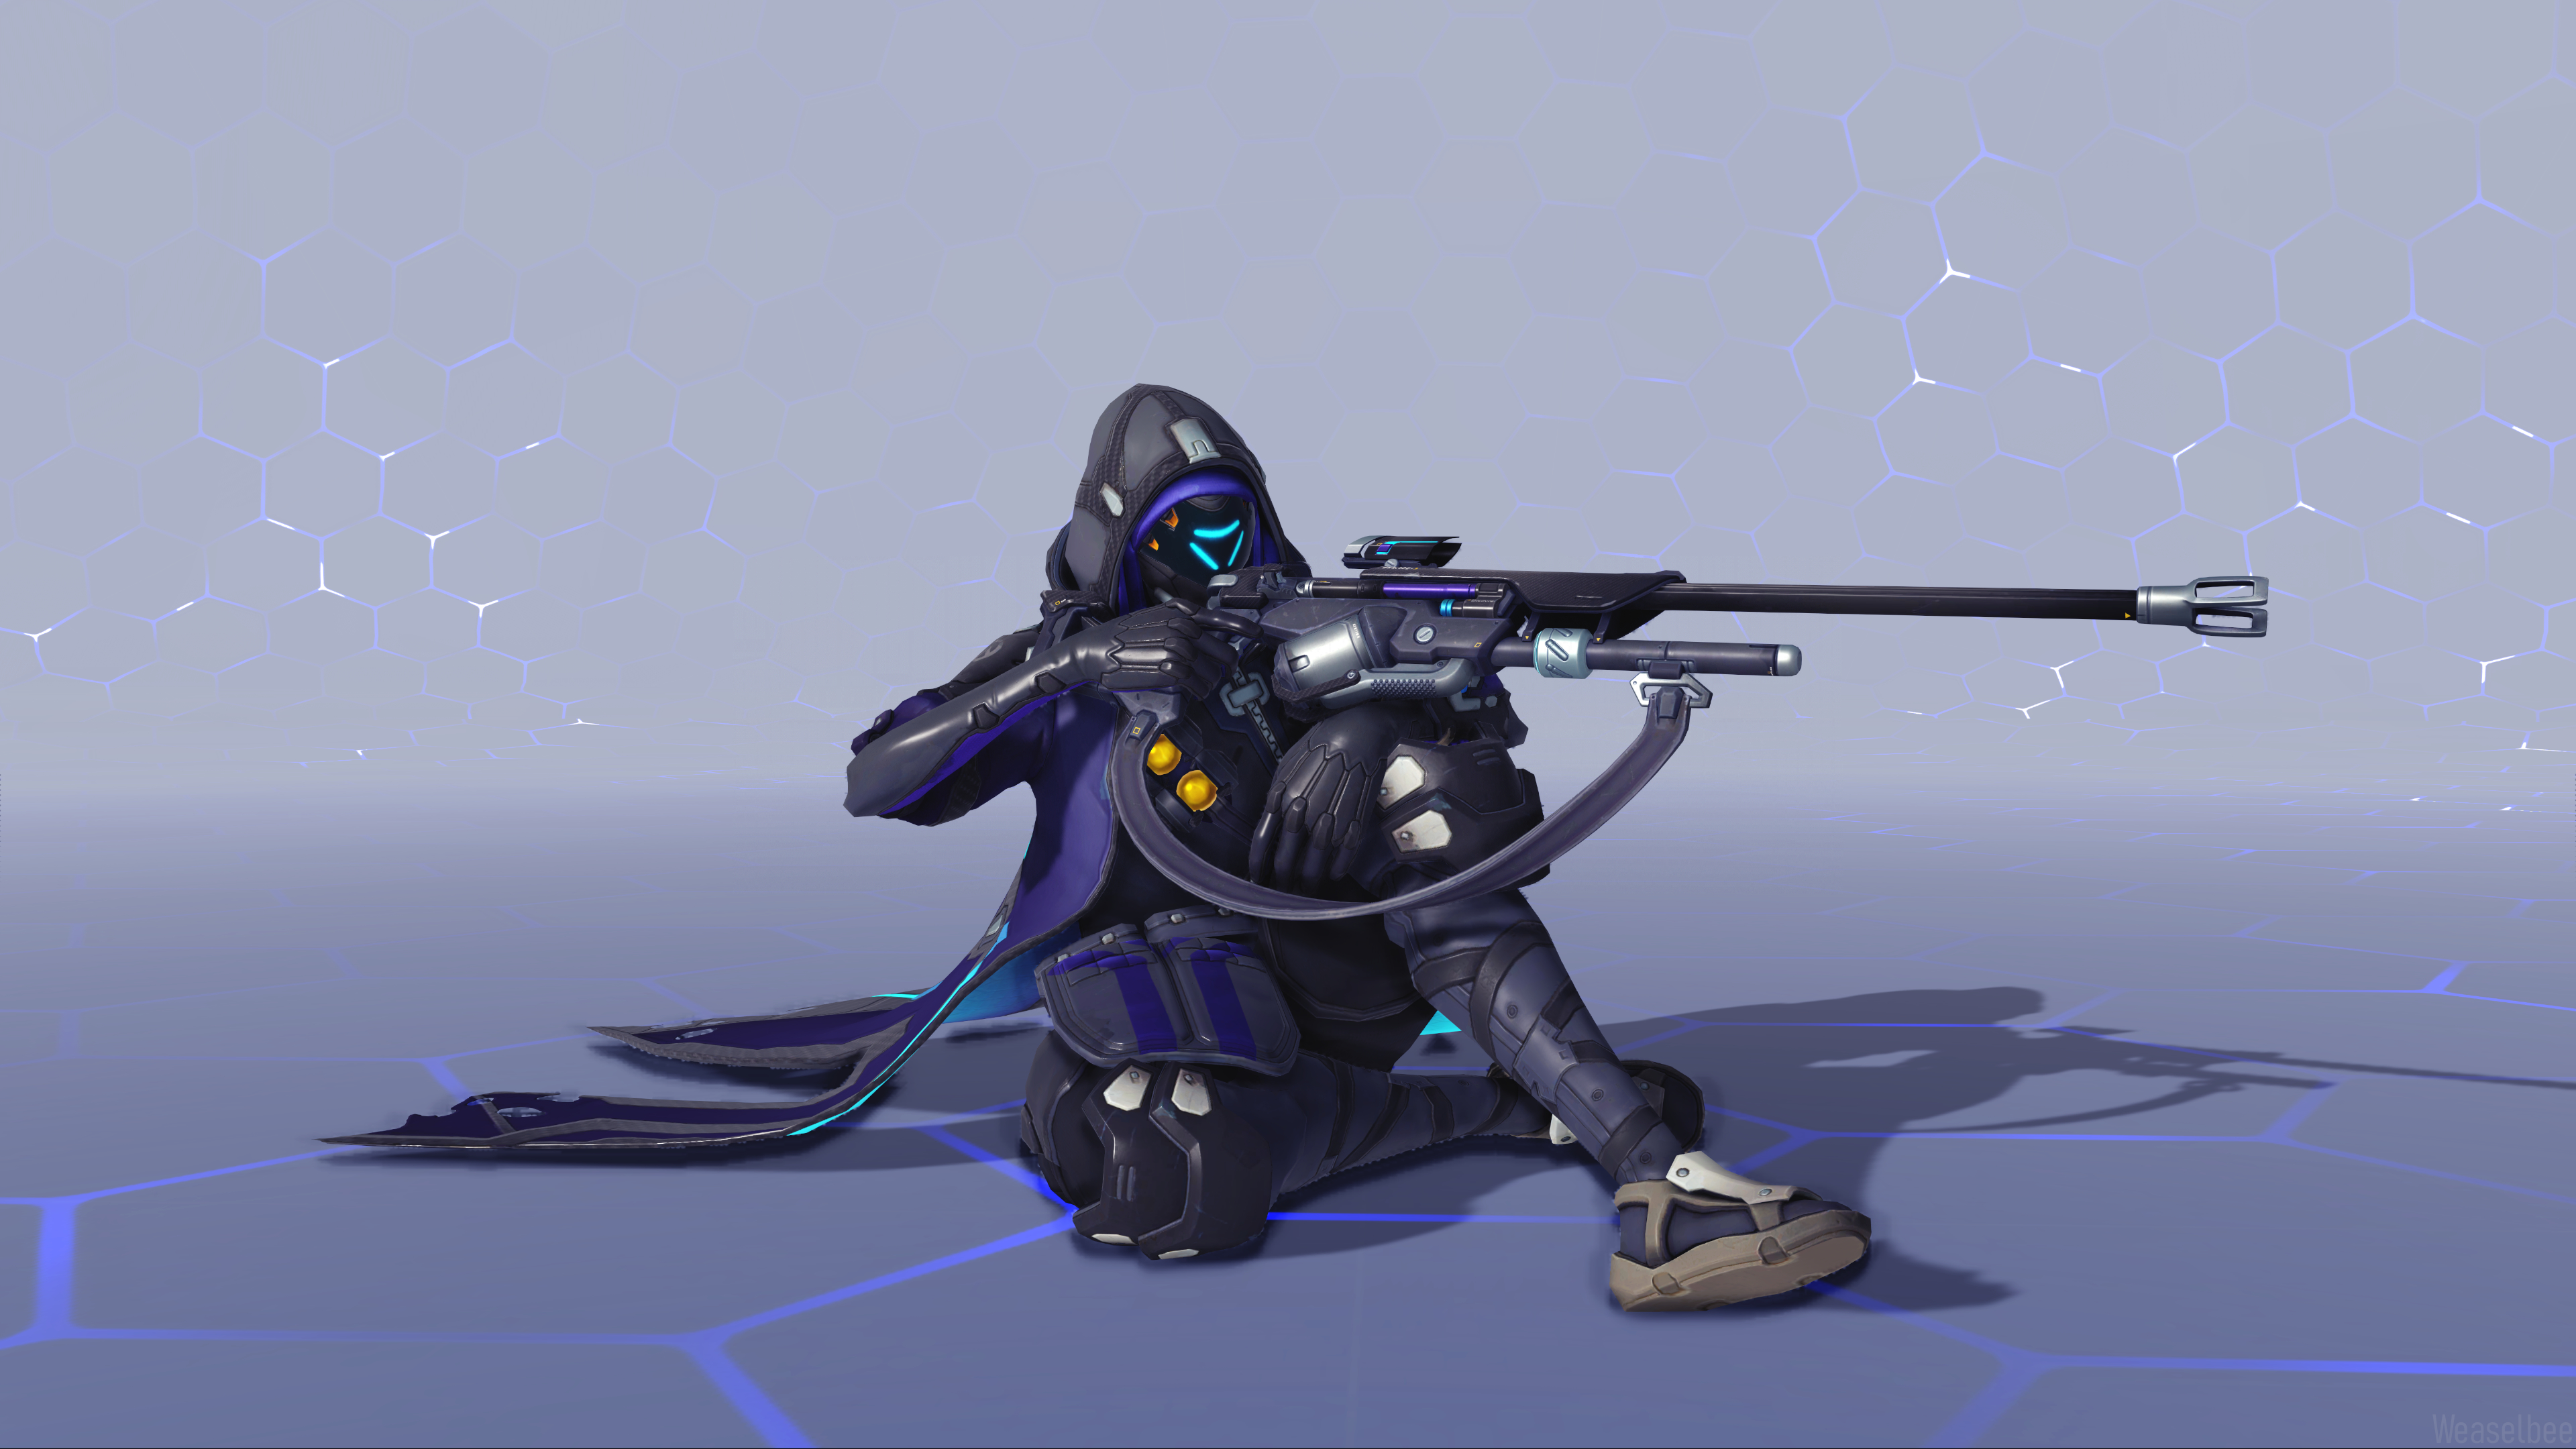 Ana Shrike Overwatch Wallpaper Hd Games 4k Wallpapers Images Photos And Background